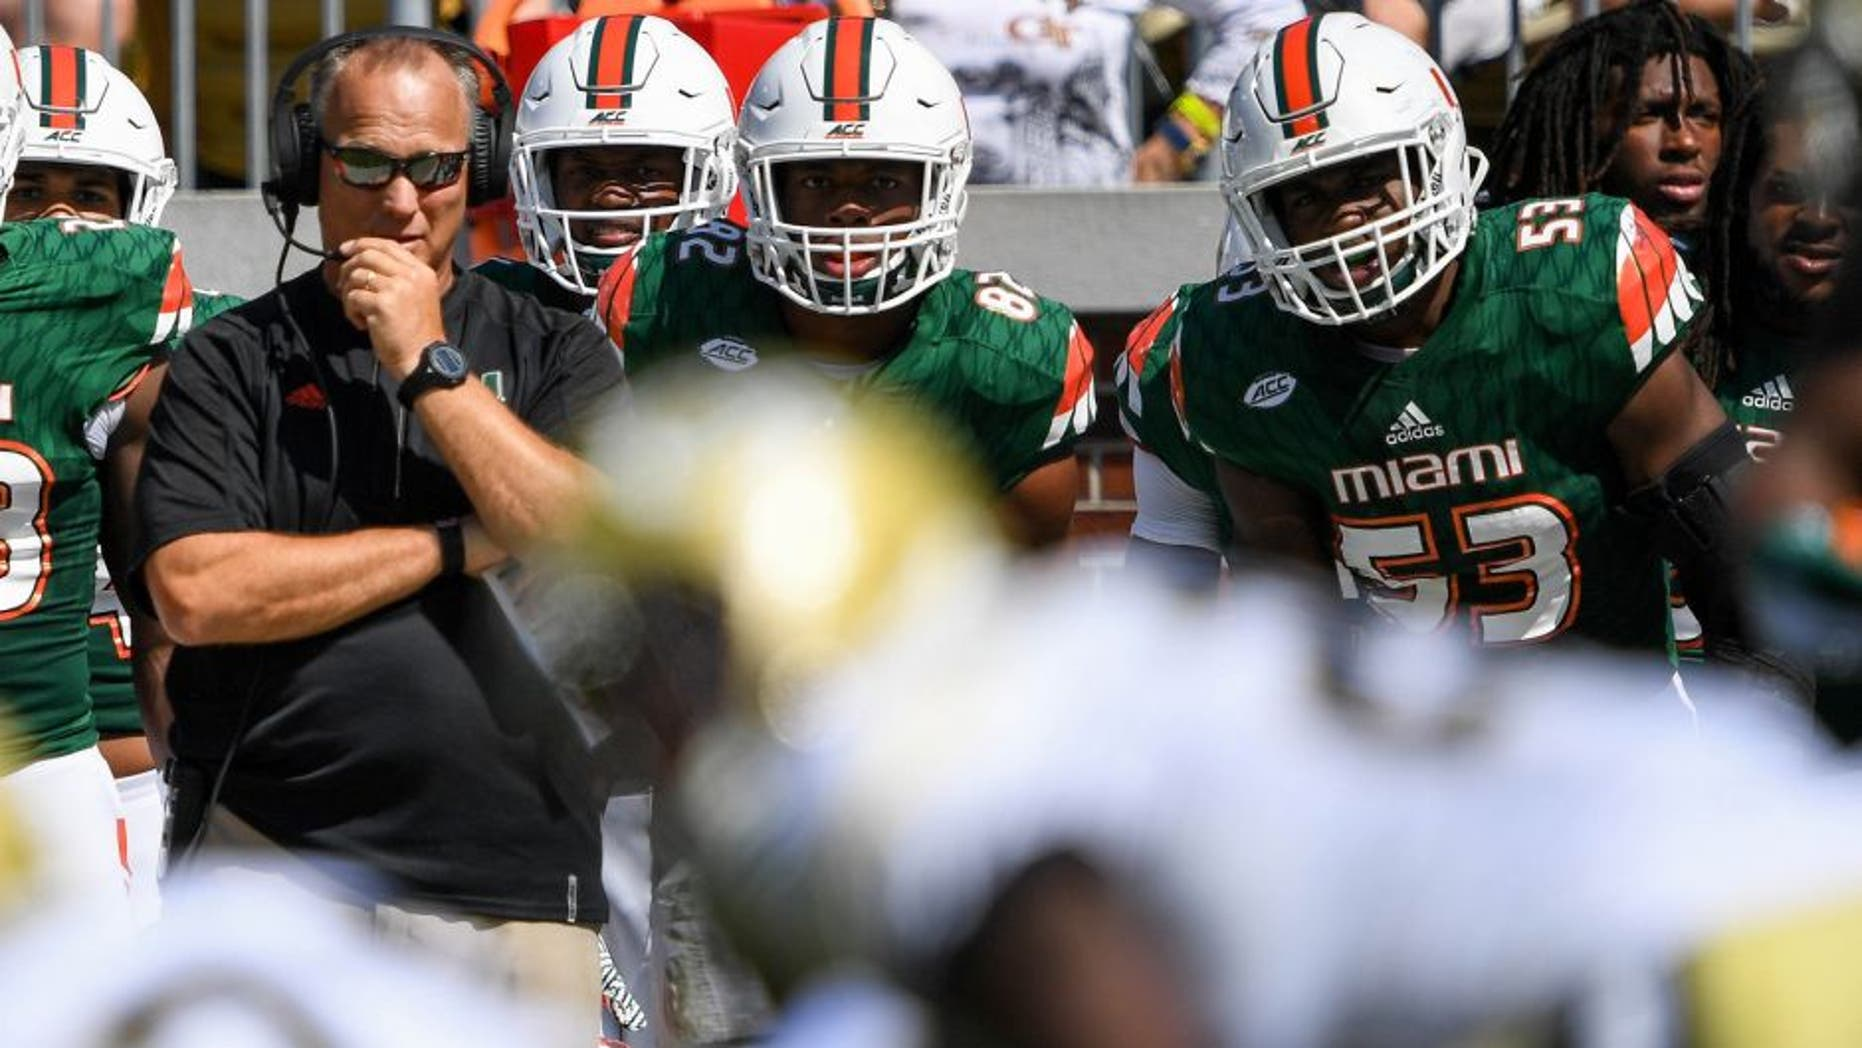 Oct 1, 2016; Atlanta, GA, USA; Miami Hurricanes head coach Mark Richt looks on during the third quarter against the Georgia Tech Yellow Jackets of the game at Bobby Dodd Stadium. Mandatory Credit: Shanna Lockwood-USA TODAY Sports